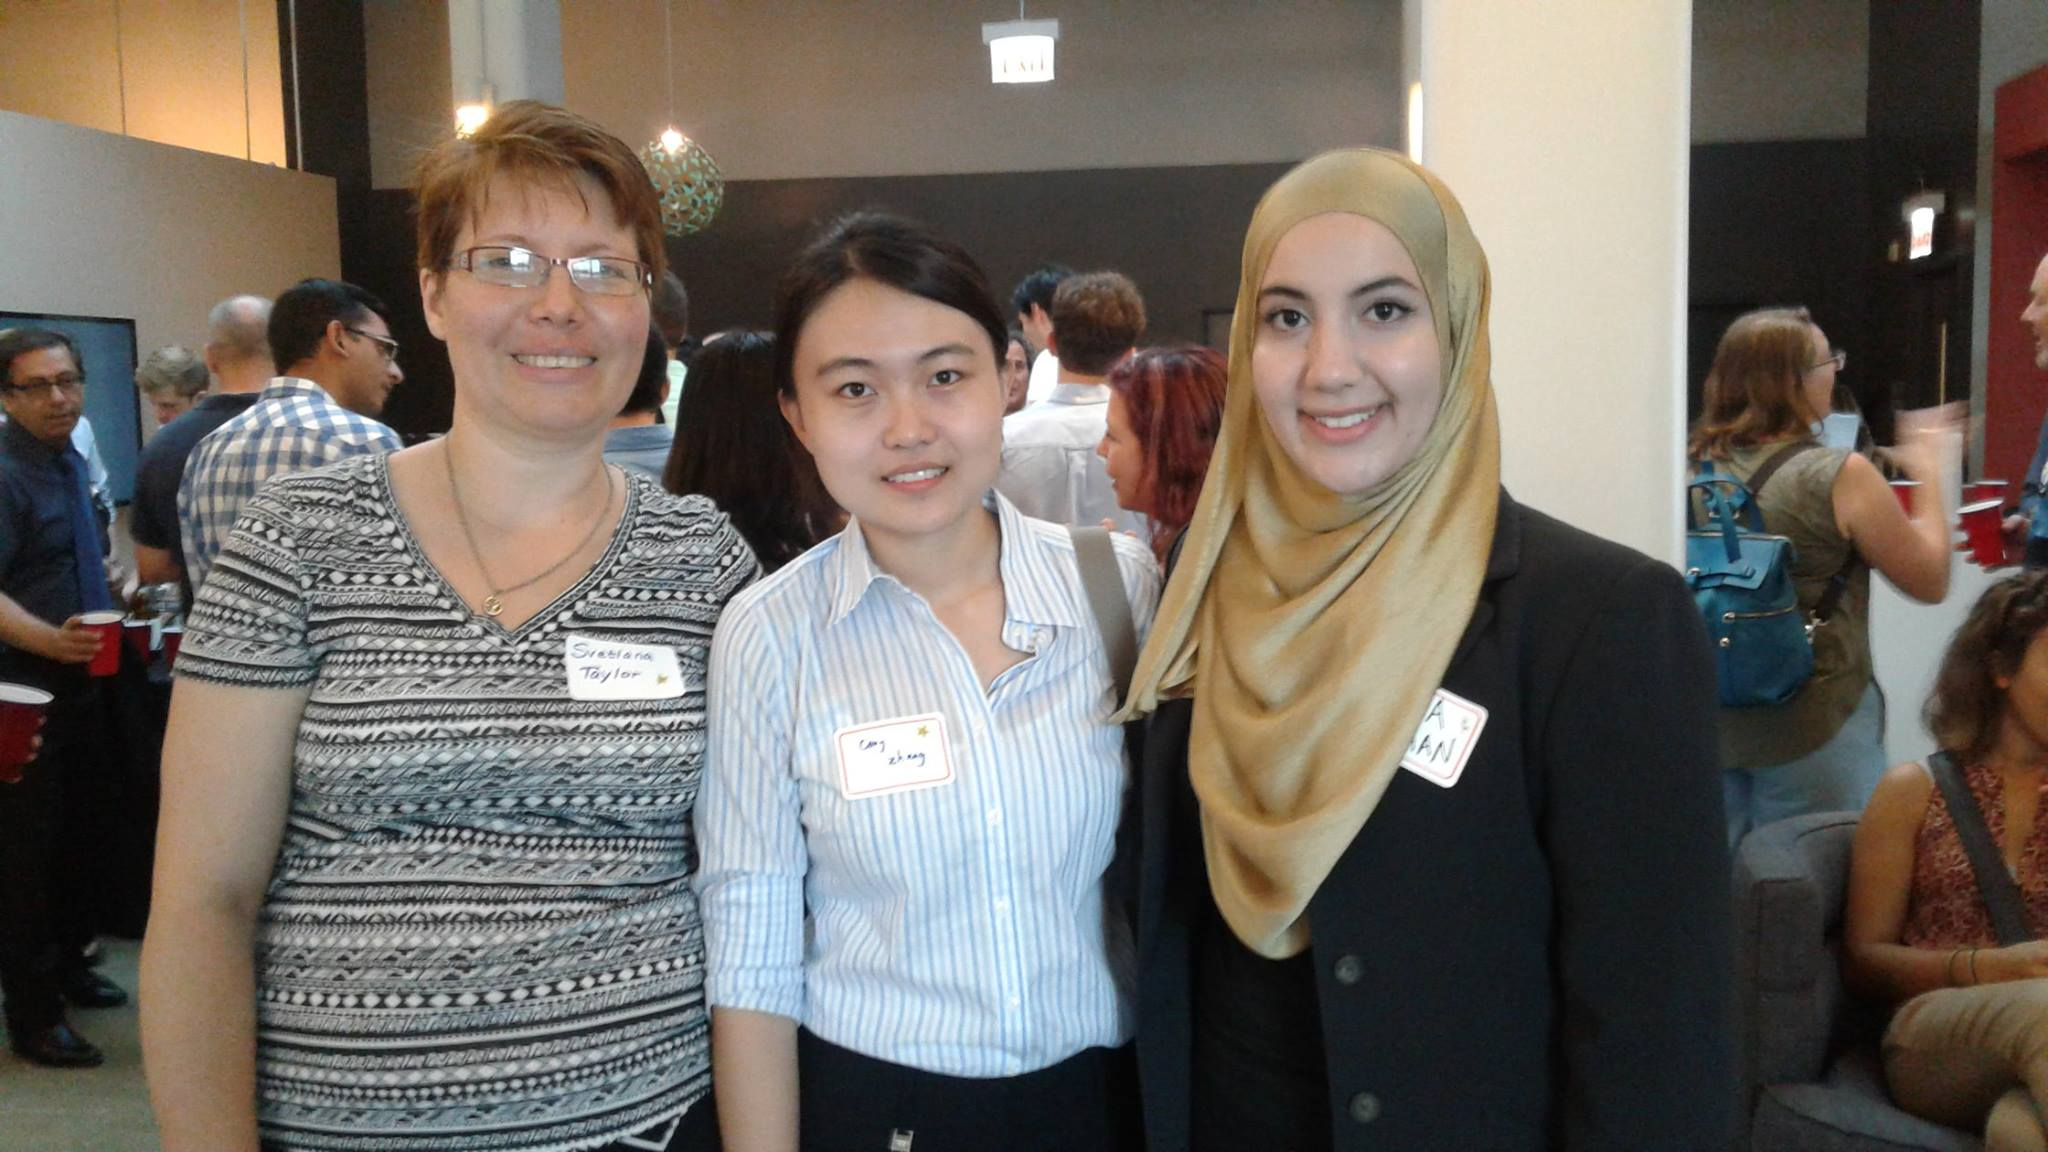 (Left to Right)Svetlana Taylor, (ChE, 5th year), Cong Zhang (MAE, Graduate Student), and Yusra Saad Sarhan (BME/ChE, 4th year)